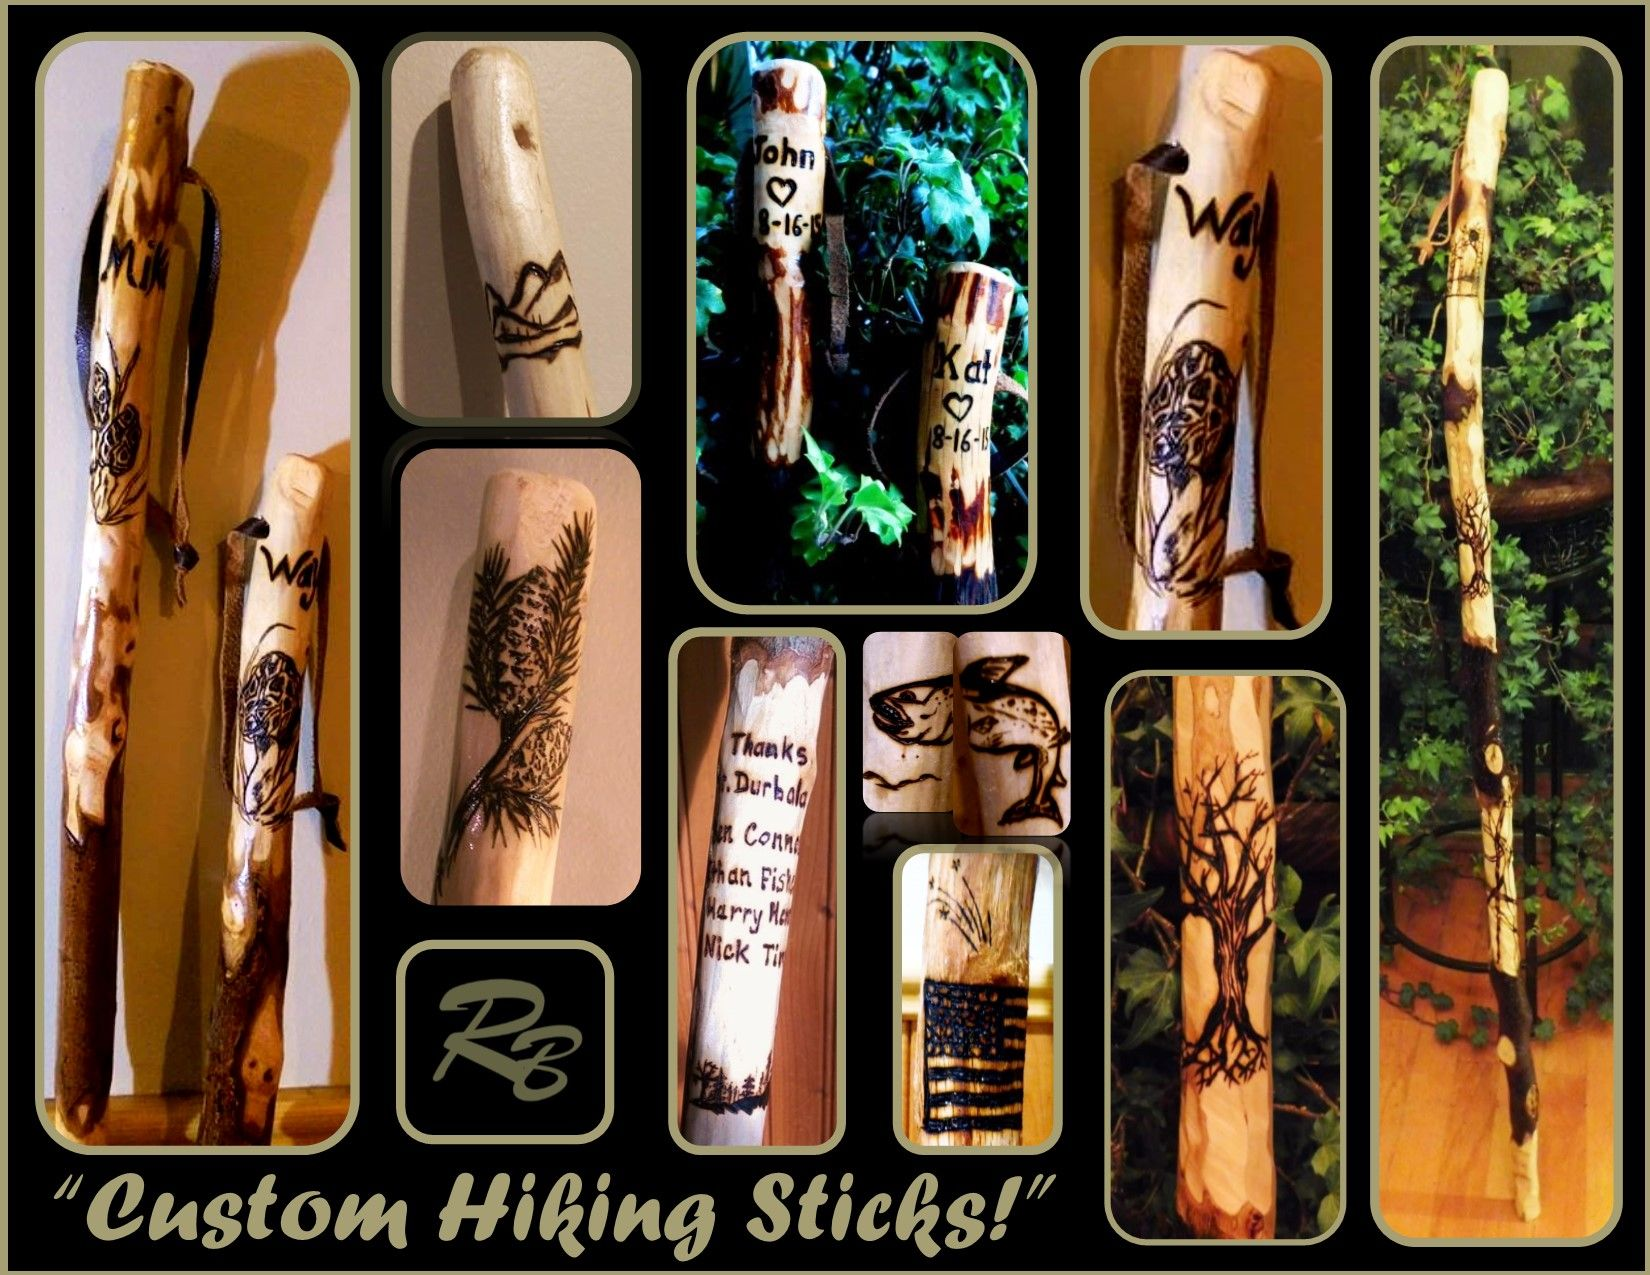 Buy a custom made hiking stickwood anniversary gift for him buy a custom made hiking stickwood anniversary gift for himanniversary gifthusband gifthiker giftretirement gift made to order from artistic biocorpaavc Image collections